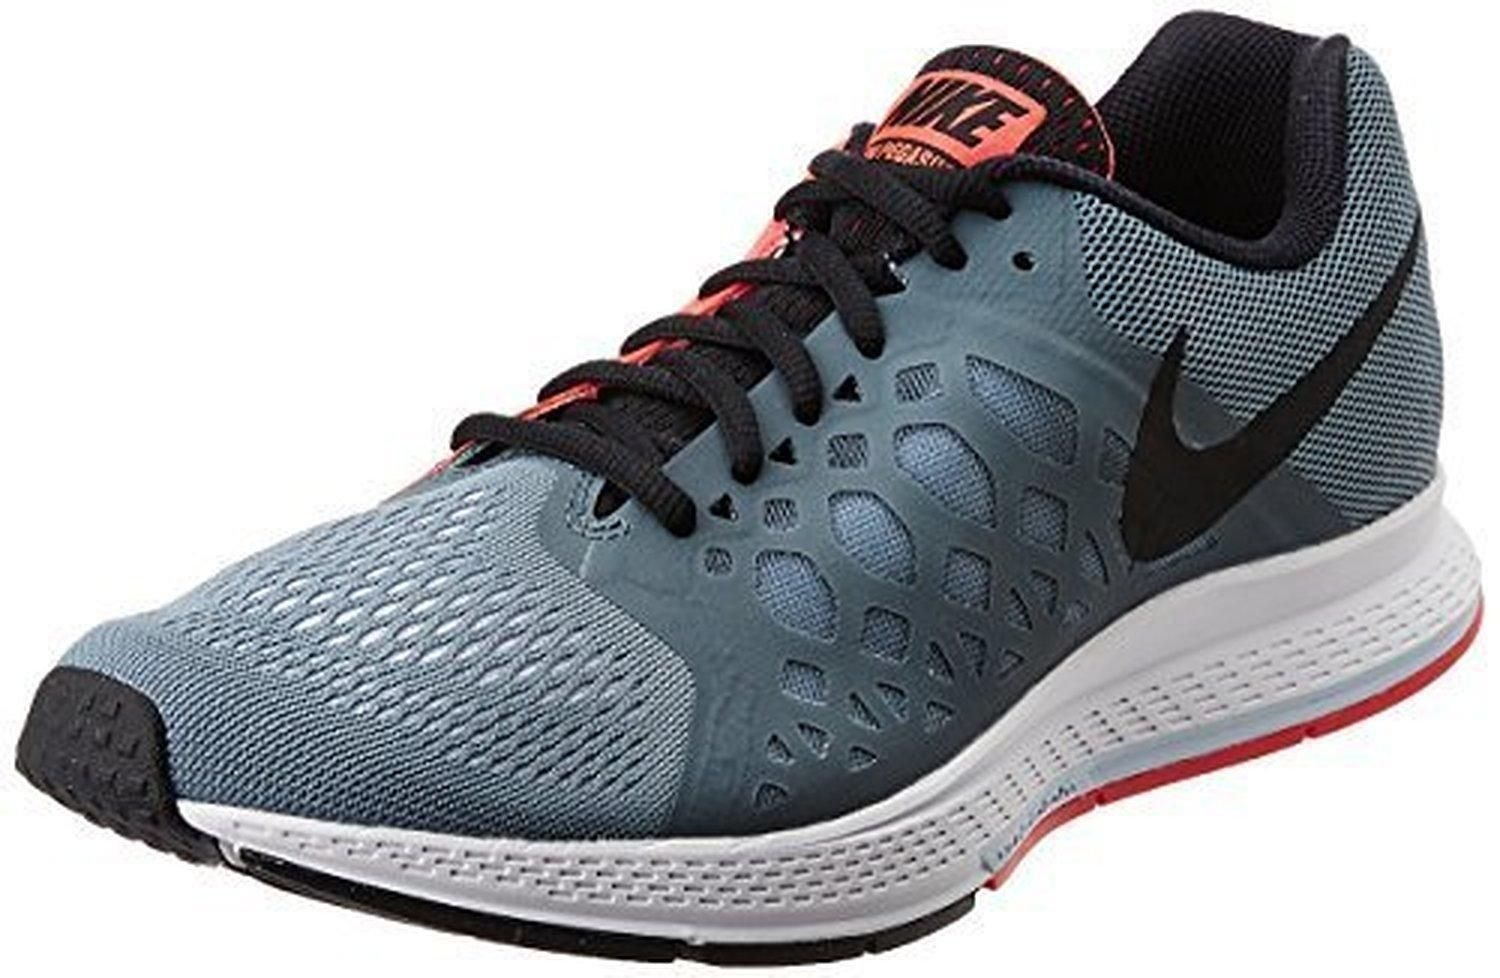 Nike Men's Air Zoom Pegasus 31, BLUE GRAPHITE/BLACK-WHITE-CLSSC CHRCL, 10.5 M US - Brought to you by Avarsha.com